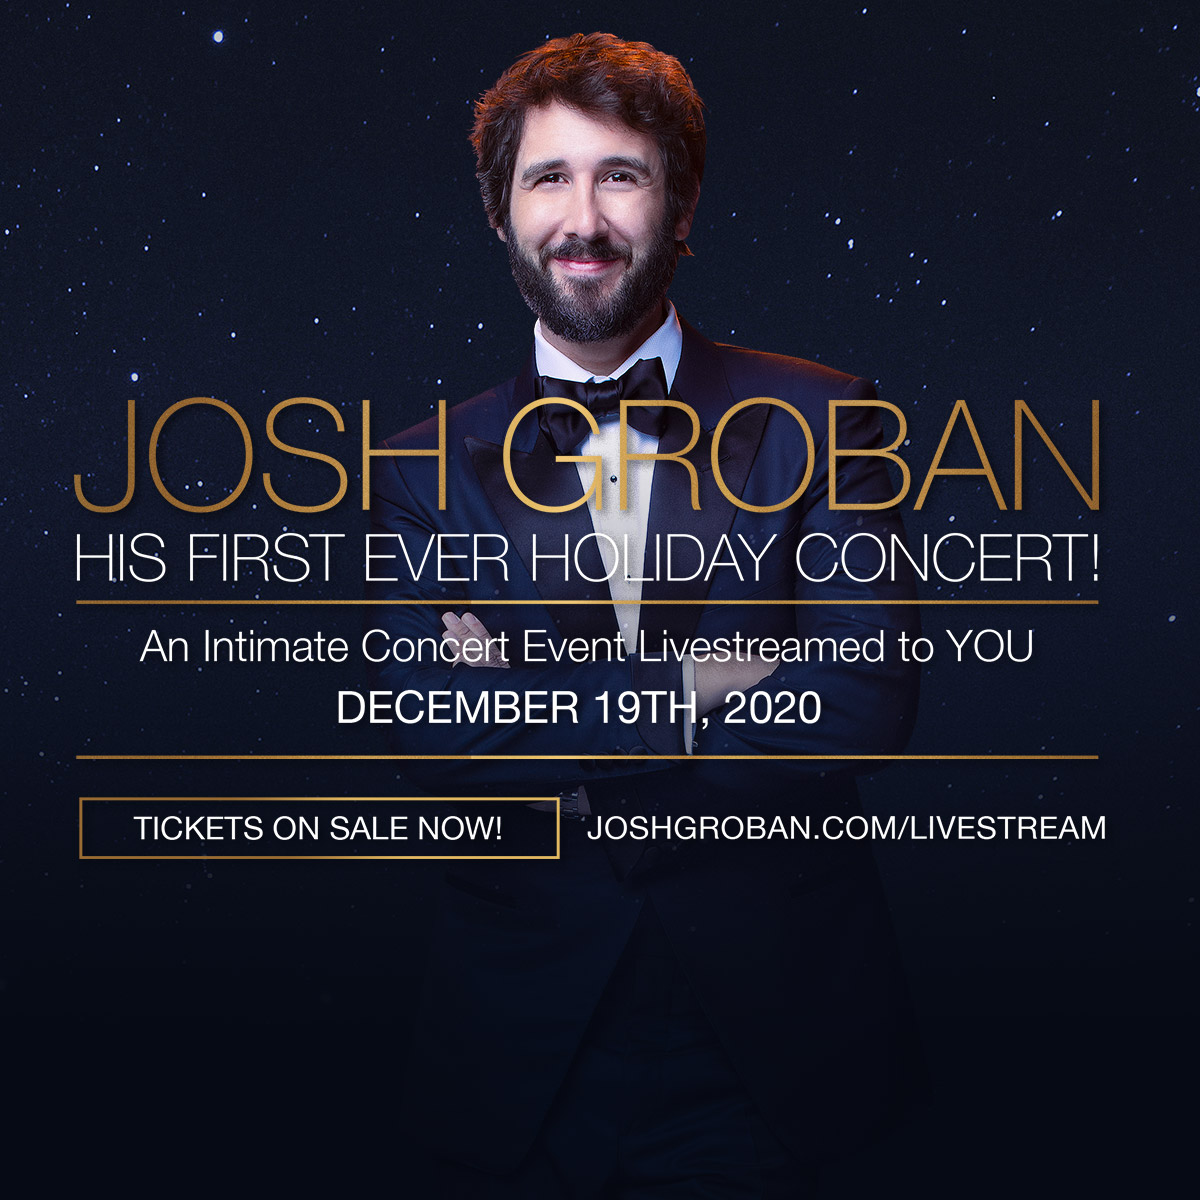 2020 Christmas Specials Featuring Josh Groban The official website of Josh Groban for news, tour info and